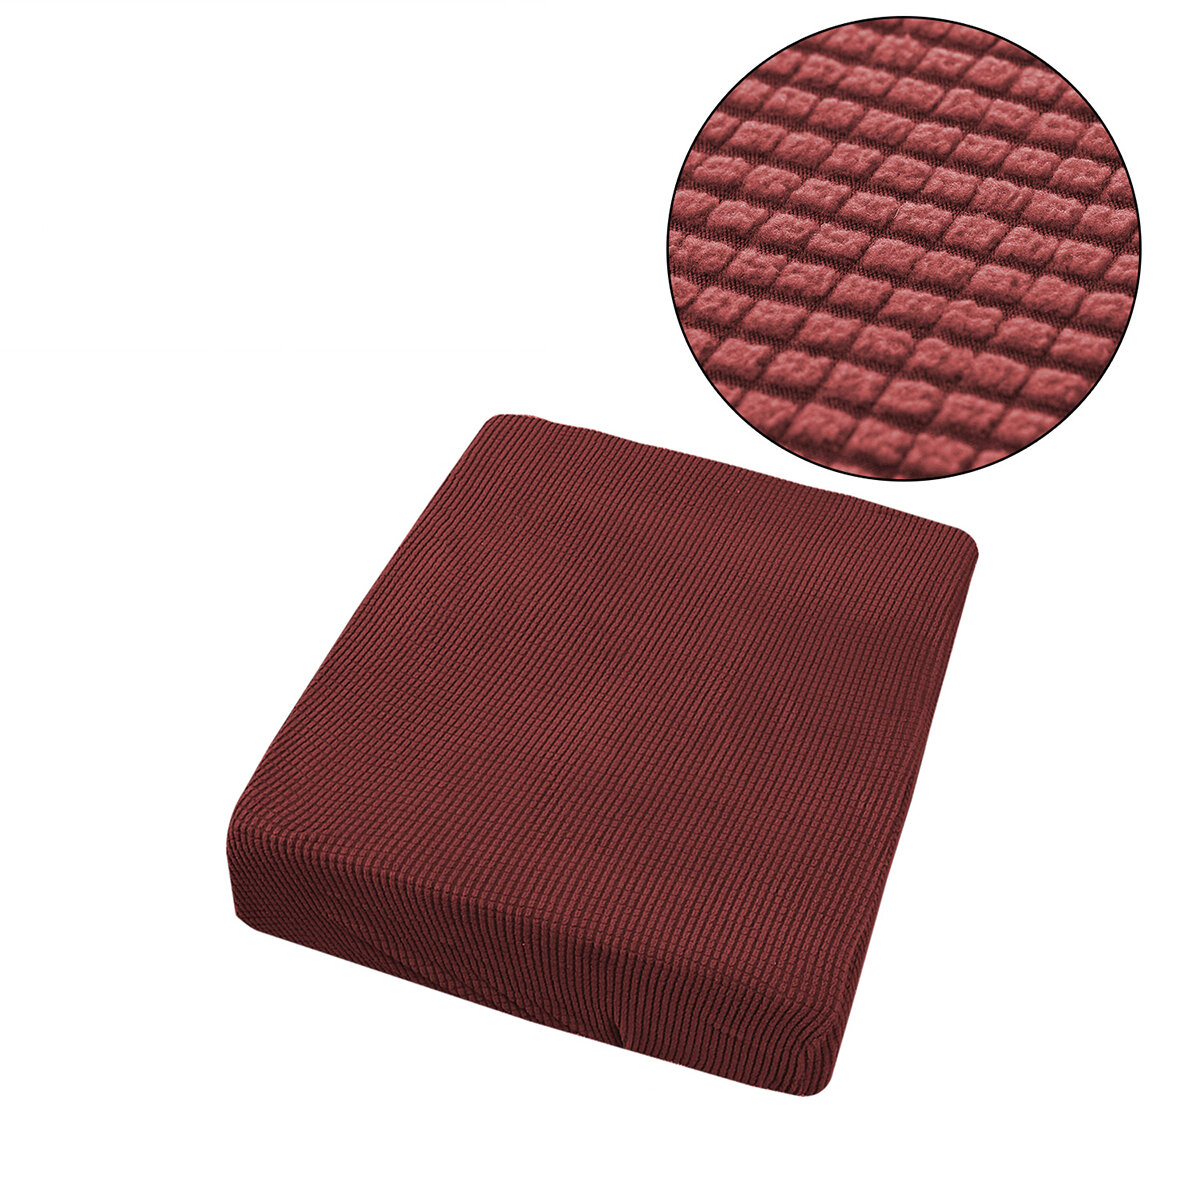 Terrific Stretchy Sofa Seat Cushion Cover Couch Slip Covers Protector Caraccident5 Cool Chair Designs And Ideas Caraccident5Info